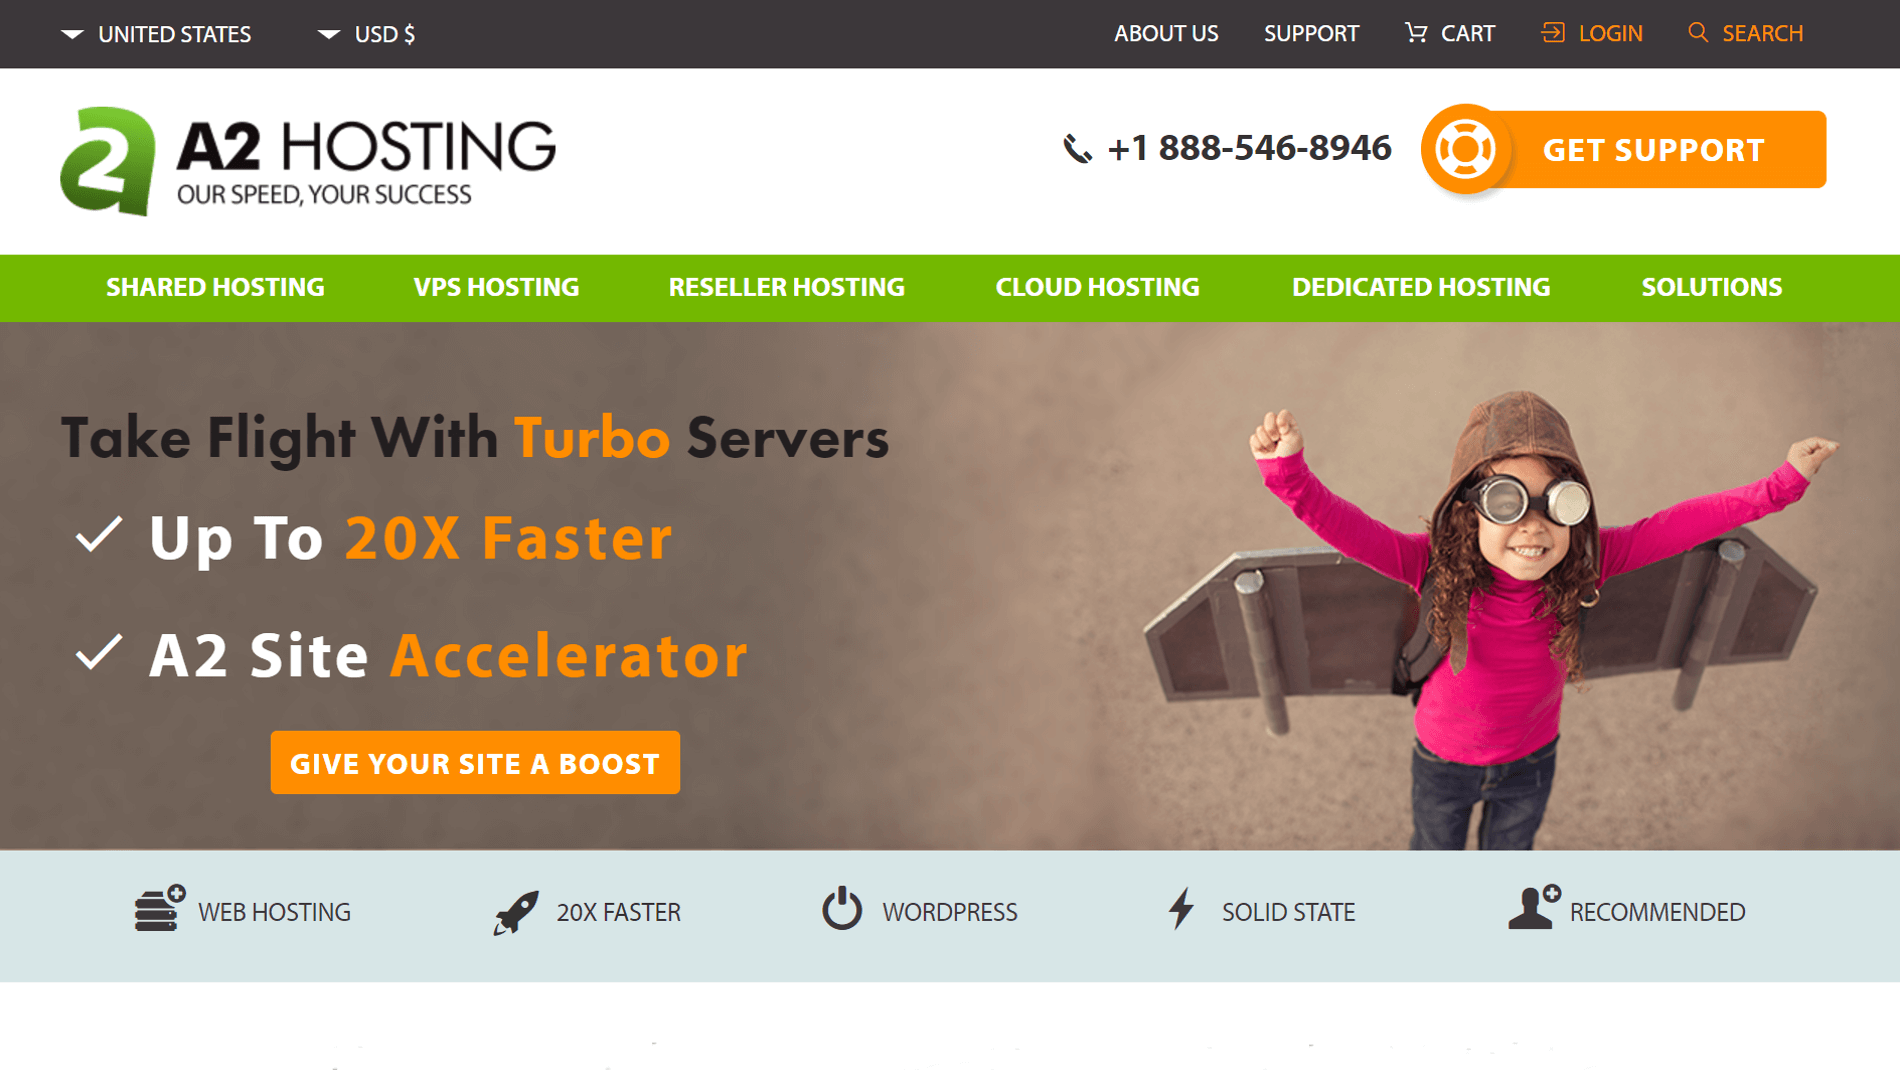 The A2 Hosting web hosting provider.